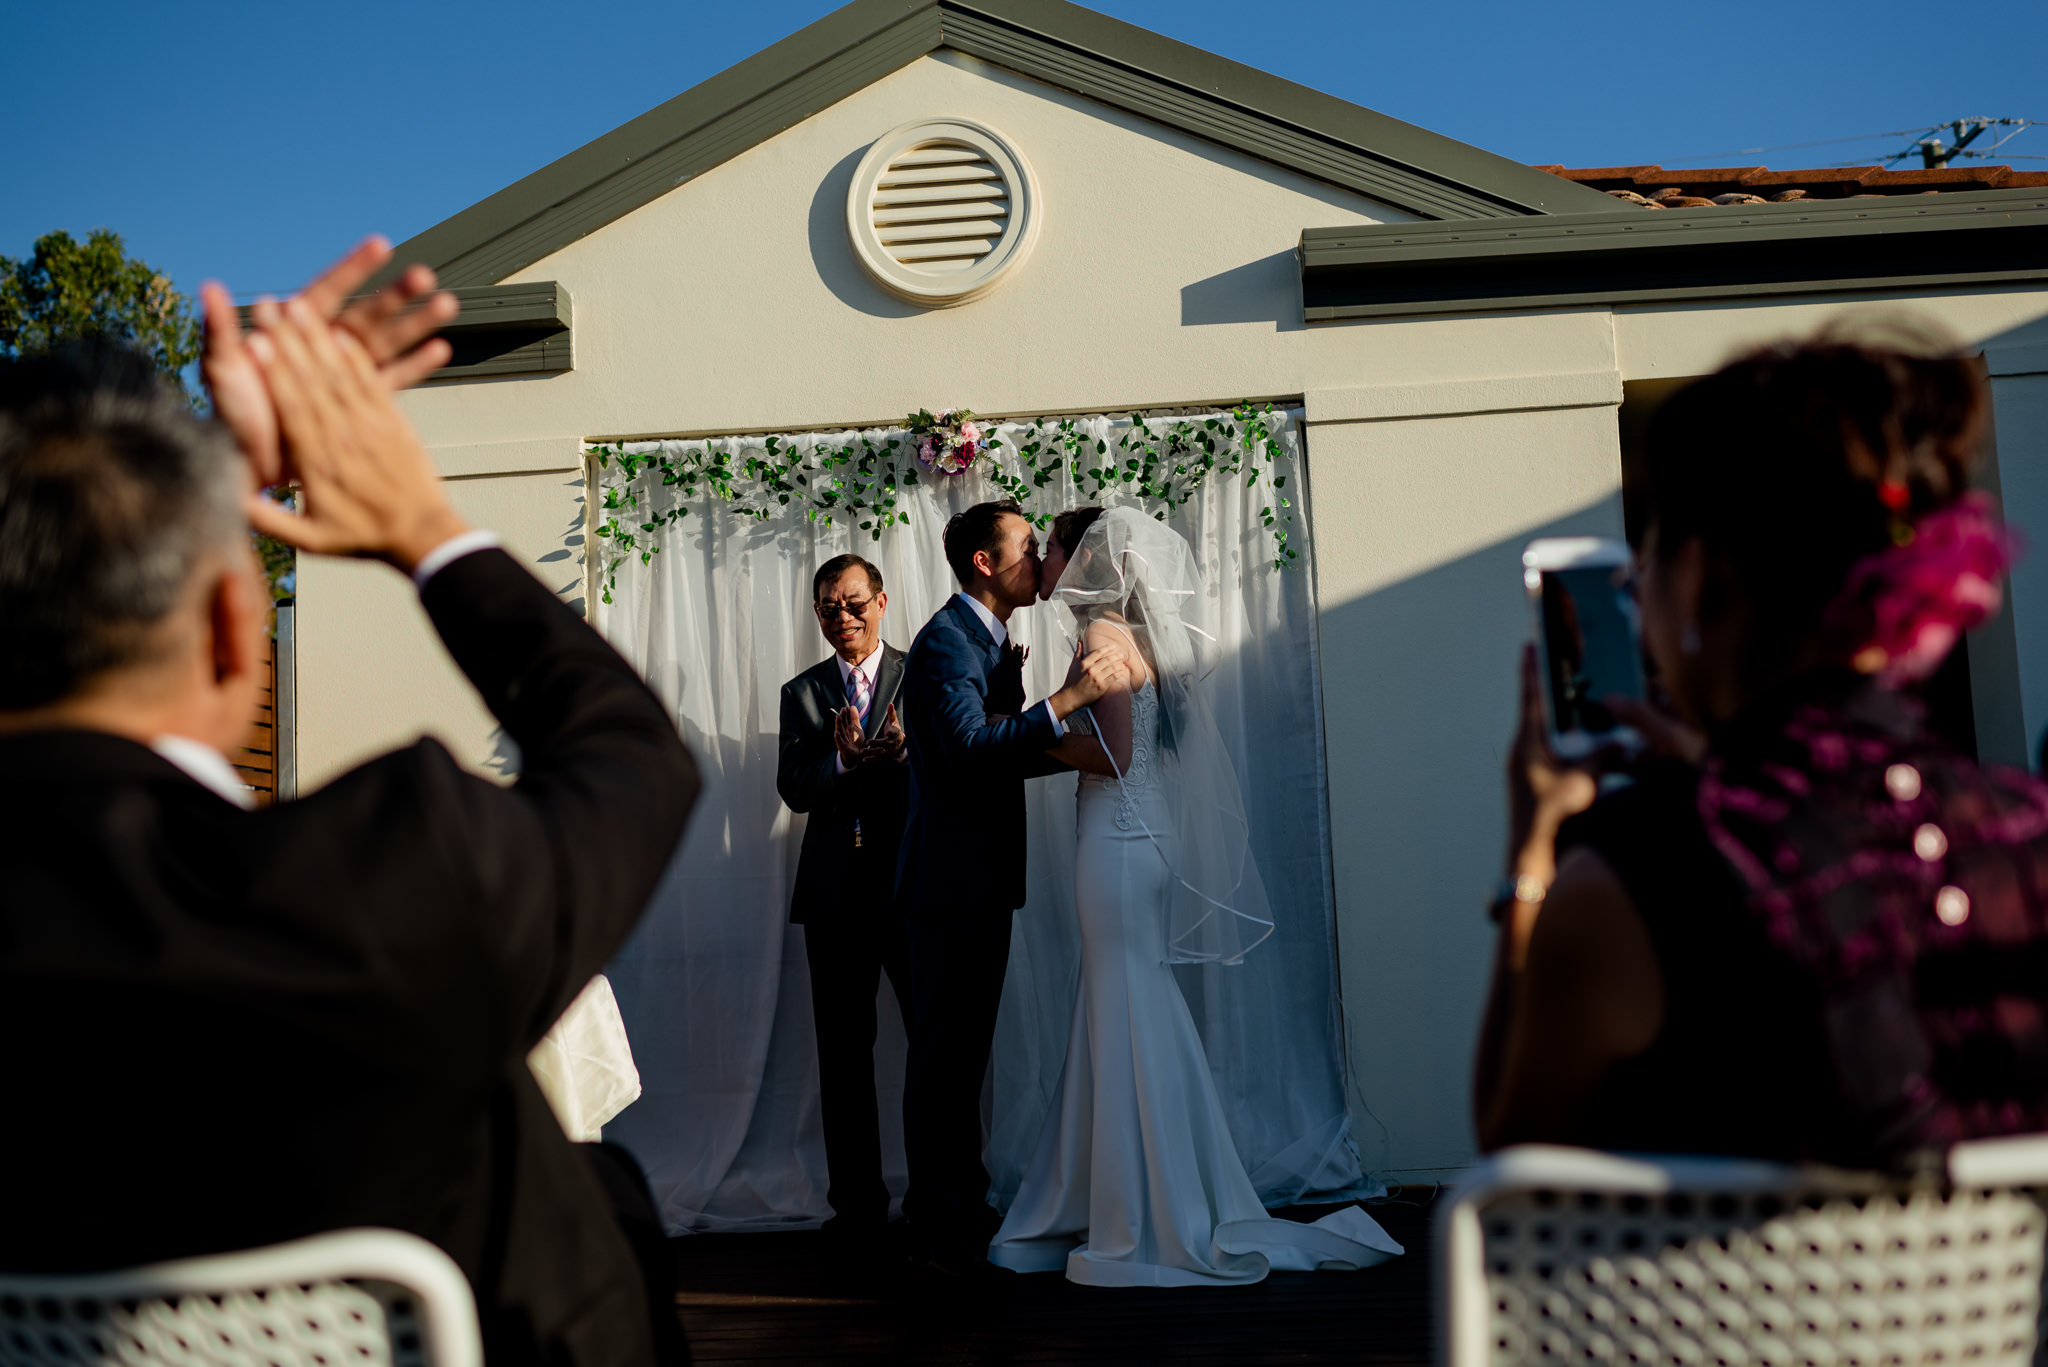 Onlookers clap as a bride and groom share a first kiss